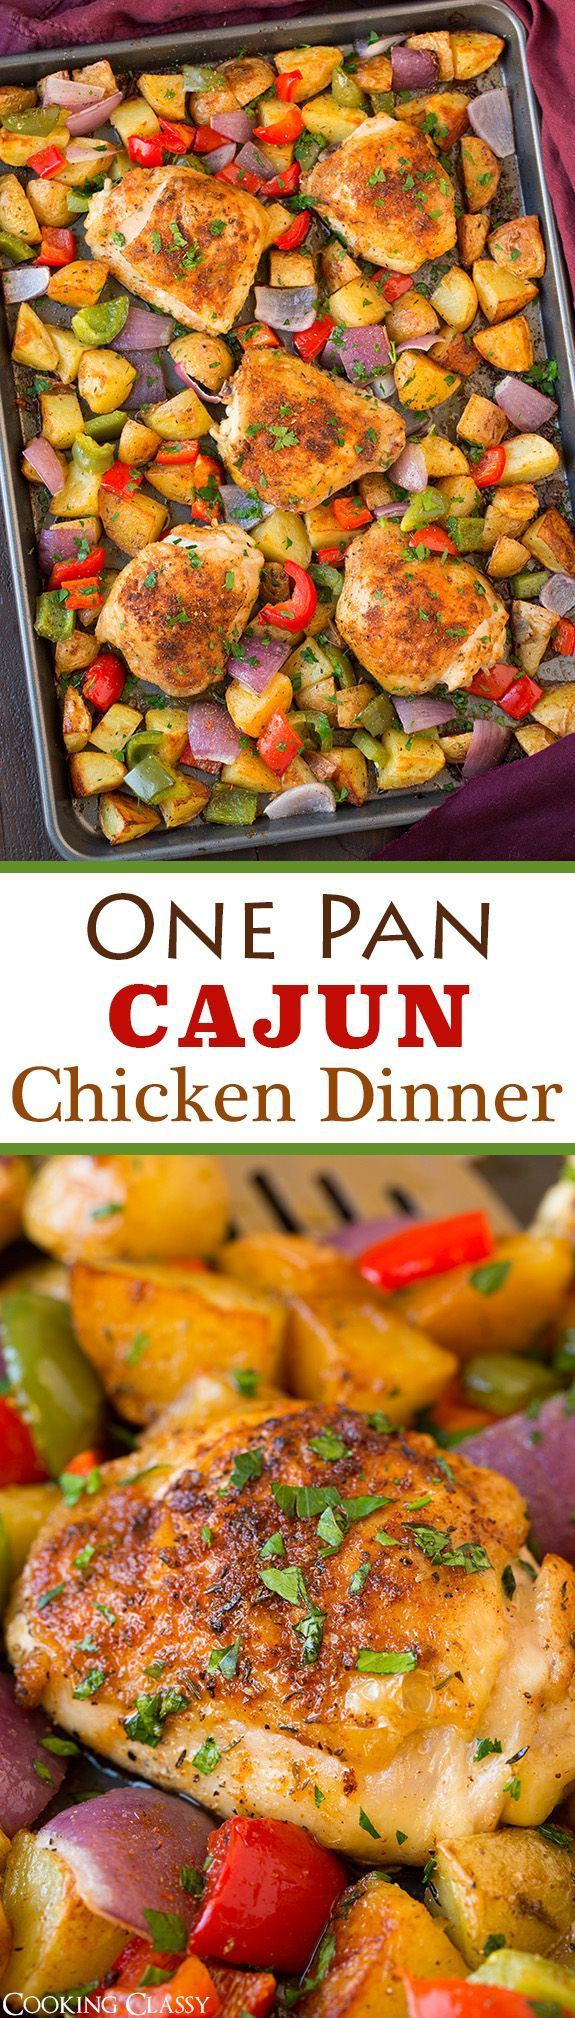 One Pan Cajun Chicken Dinner - LOVED the flavors in this one pan meal!! So easy to make and clean up is a breeze!